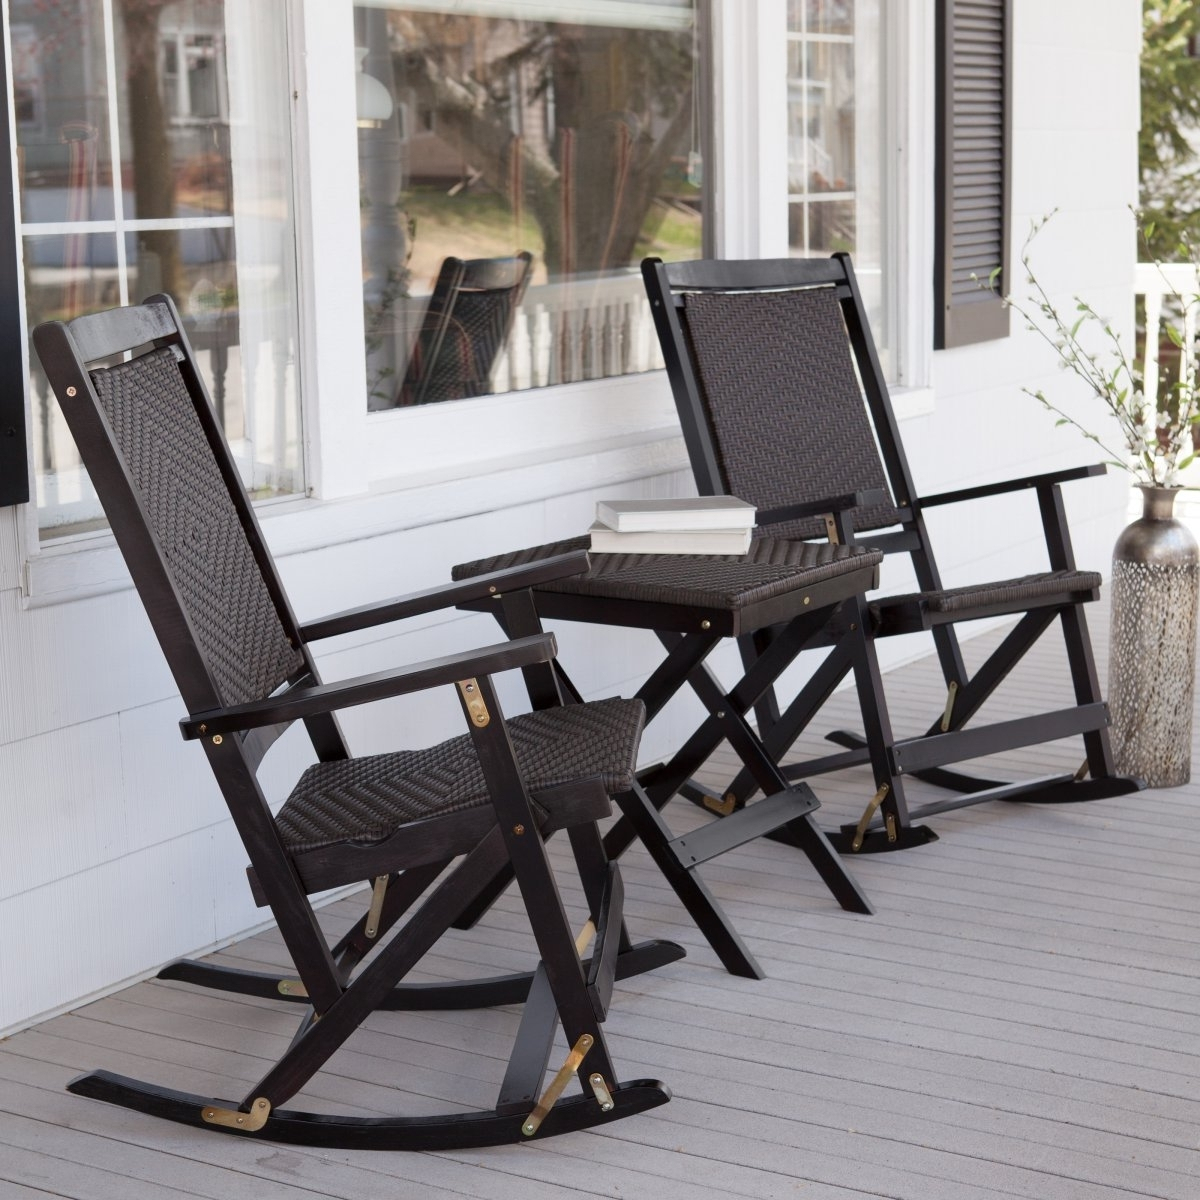 Rocking Chairs For Porch Pertaining To Latest Reupholsters Black Rocking Chairs — The Home Redesign (View 19 of 20)